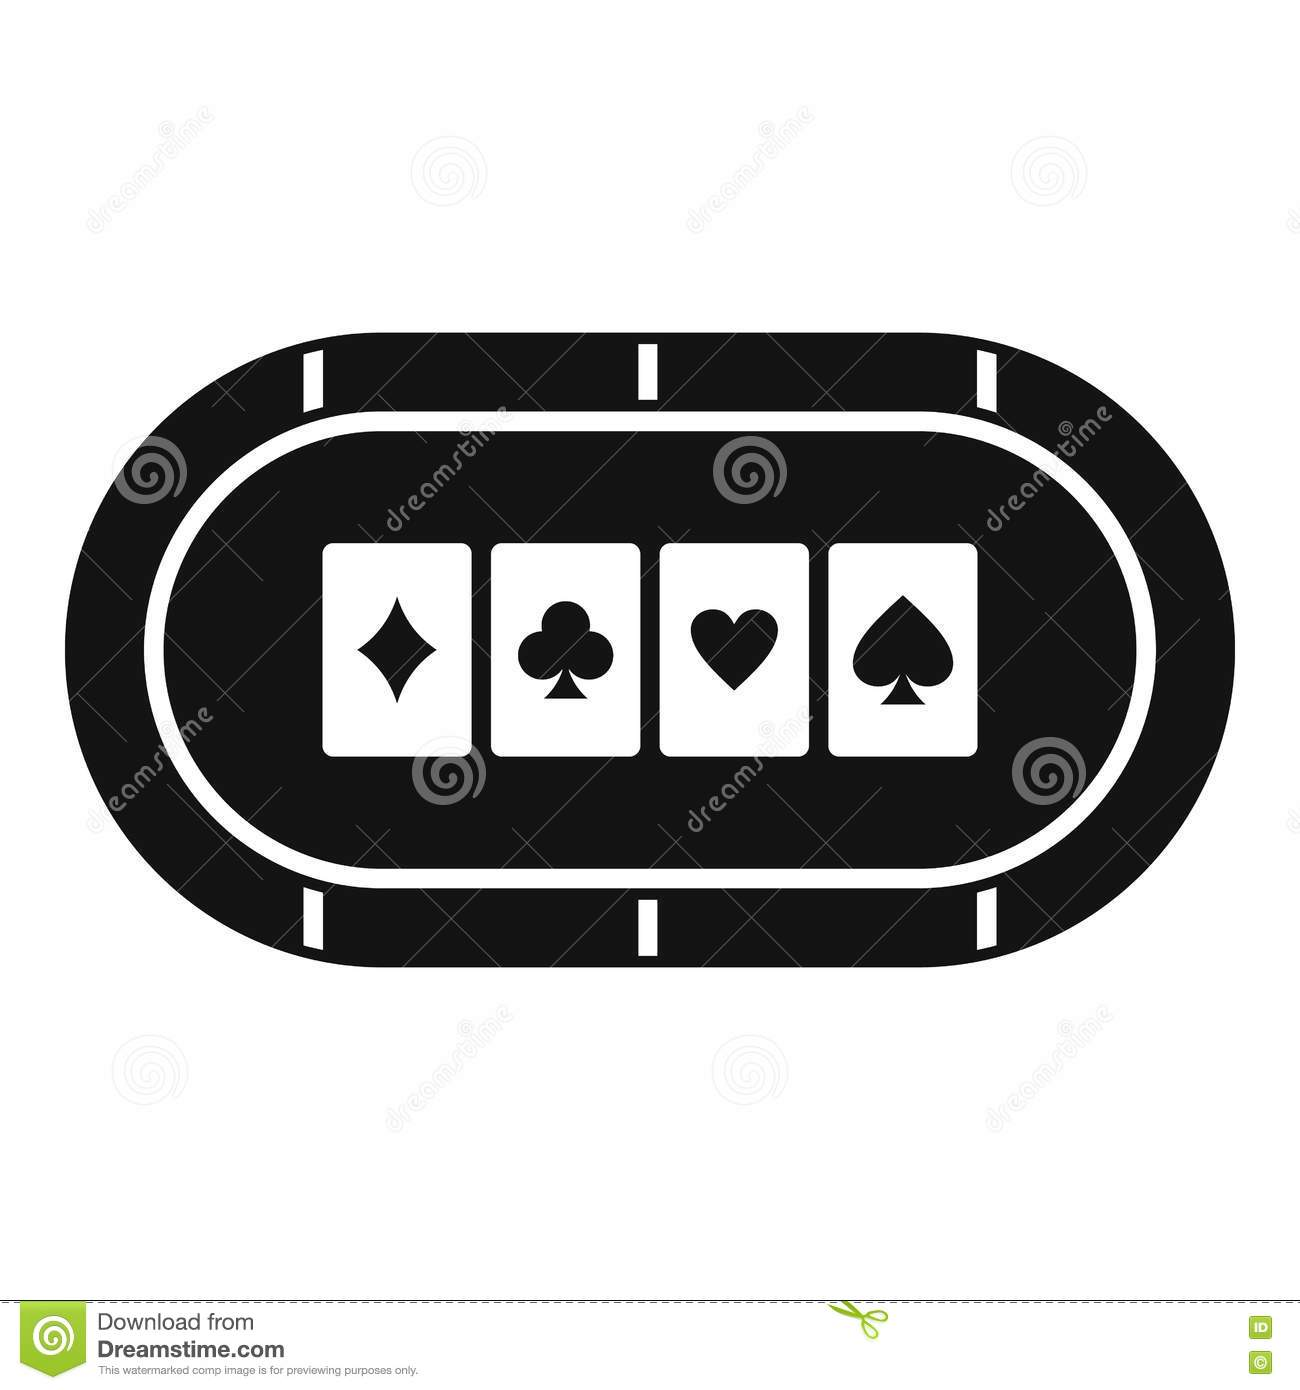 Simple table free other icons - Icon Illustration Poker Simple Table